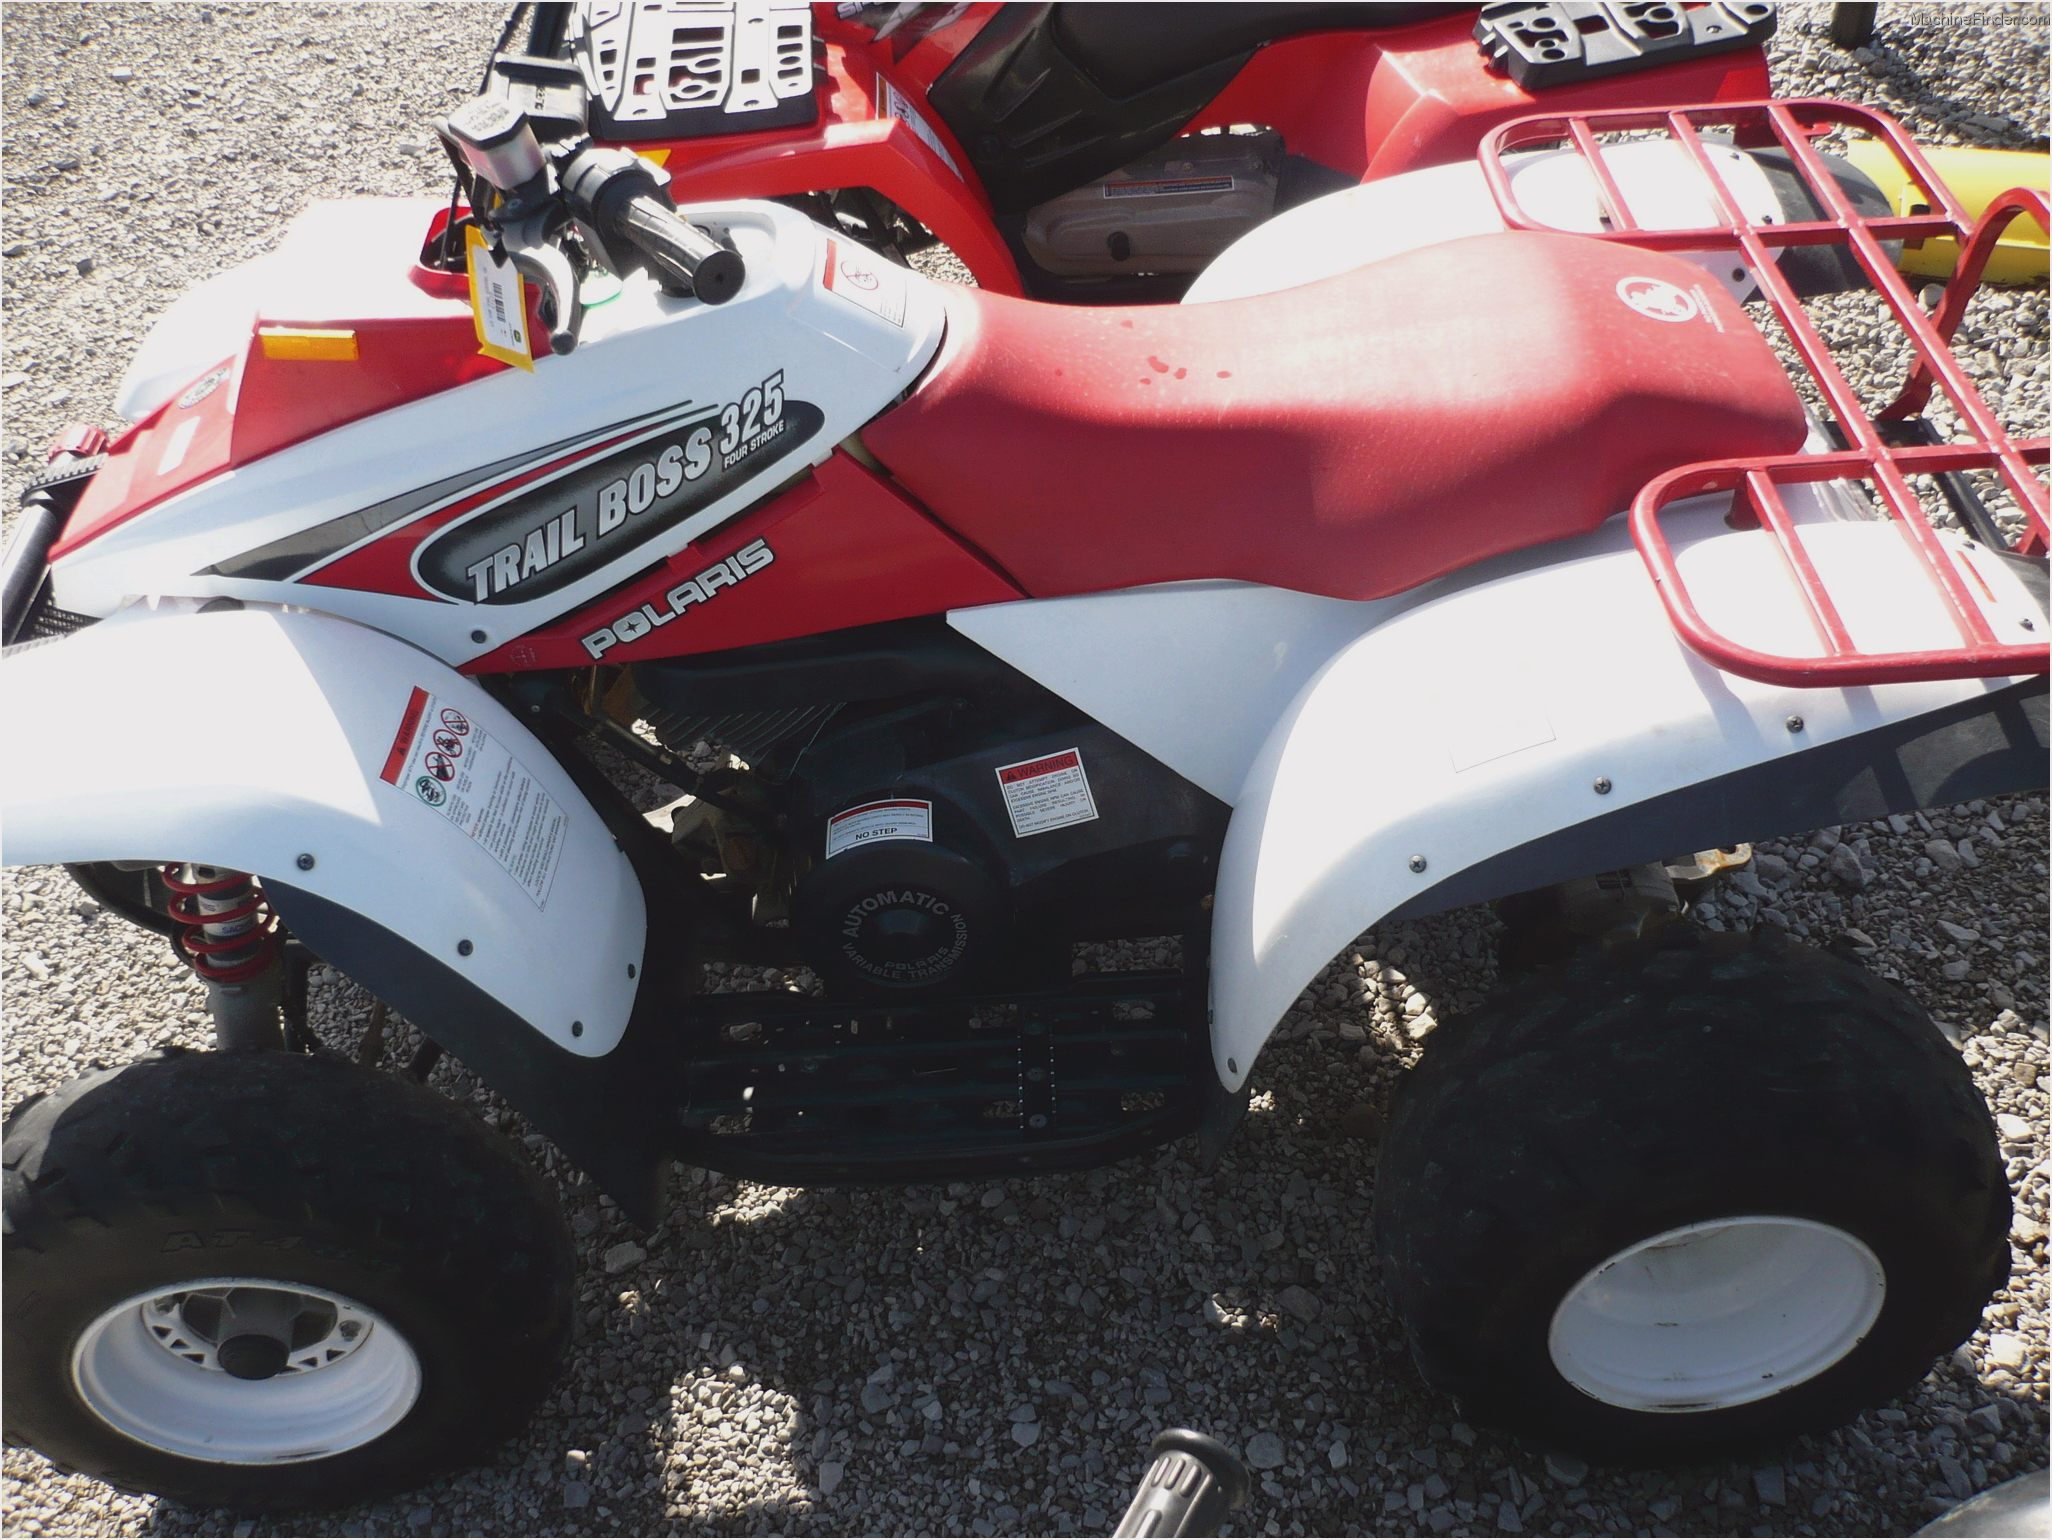 ... Polaris Trail Boss 325 2000 images #120870 ...